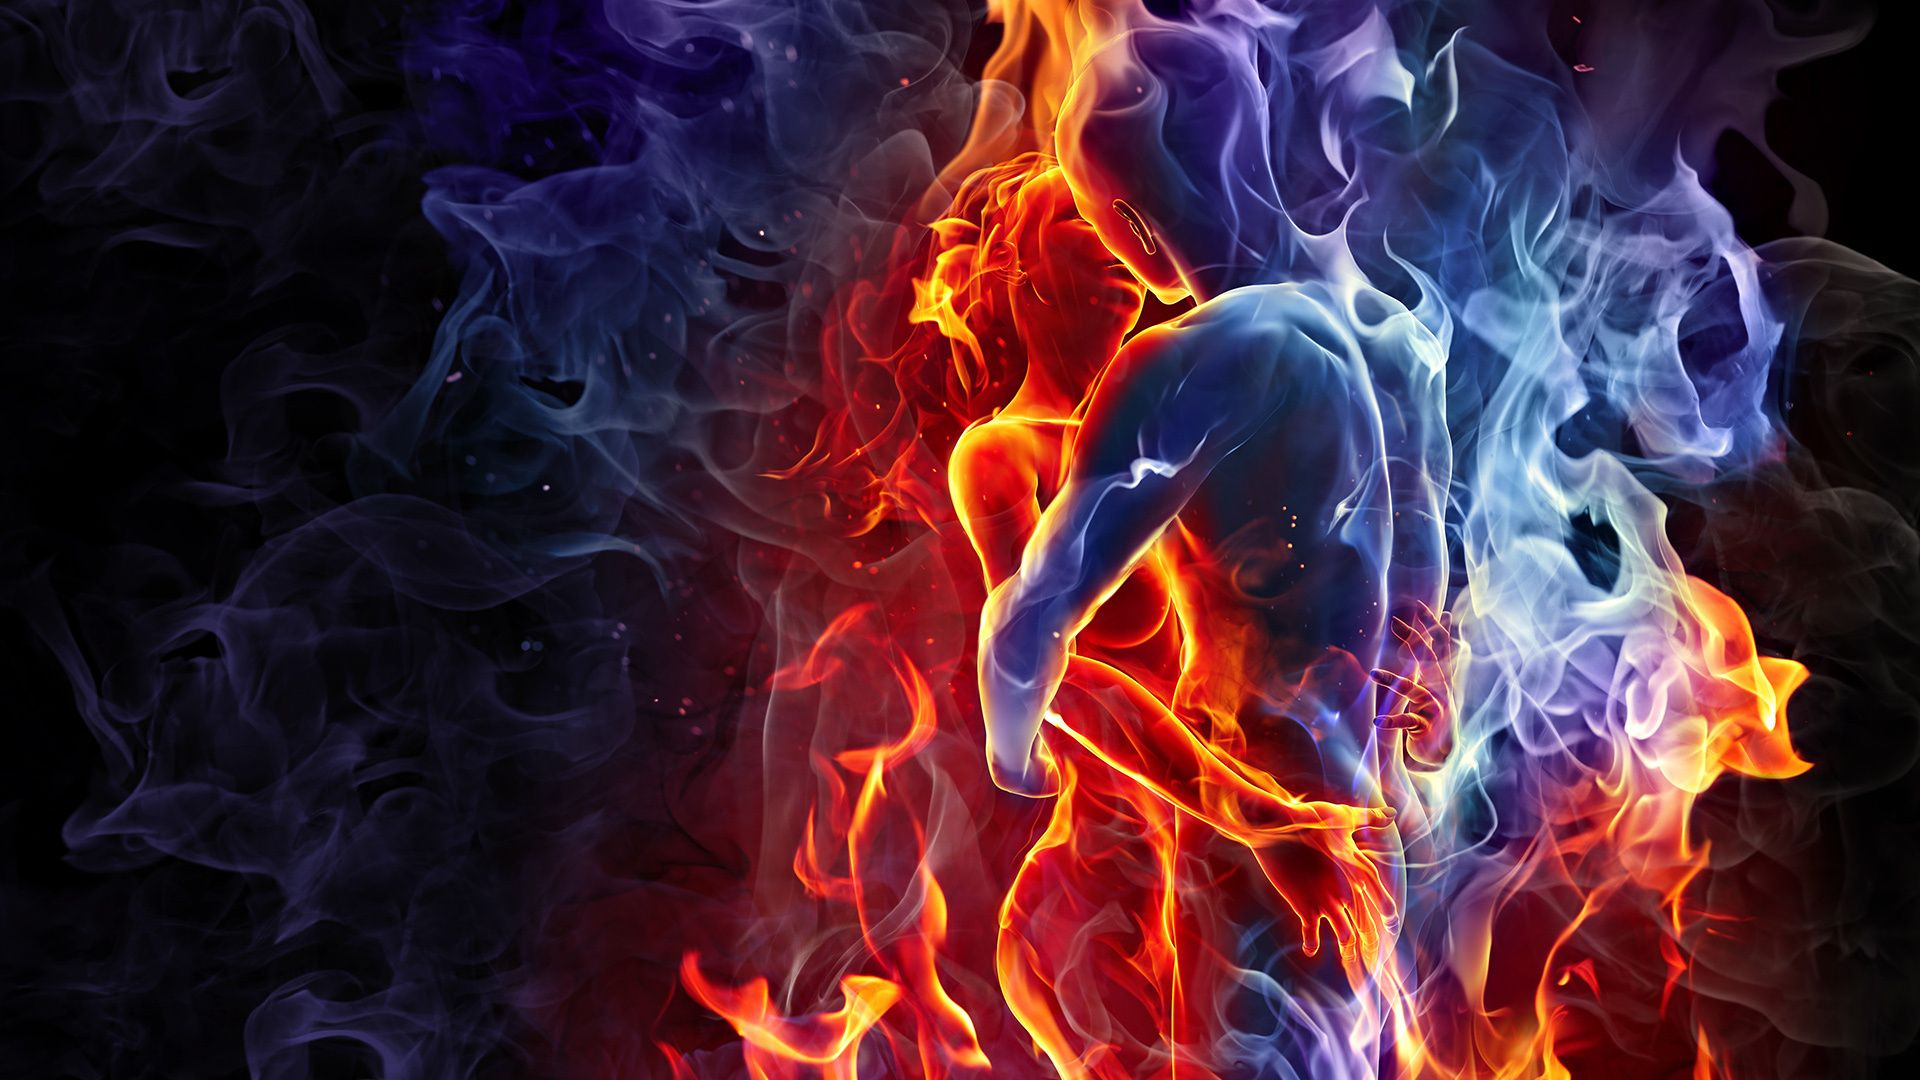 Fire and ice image sex